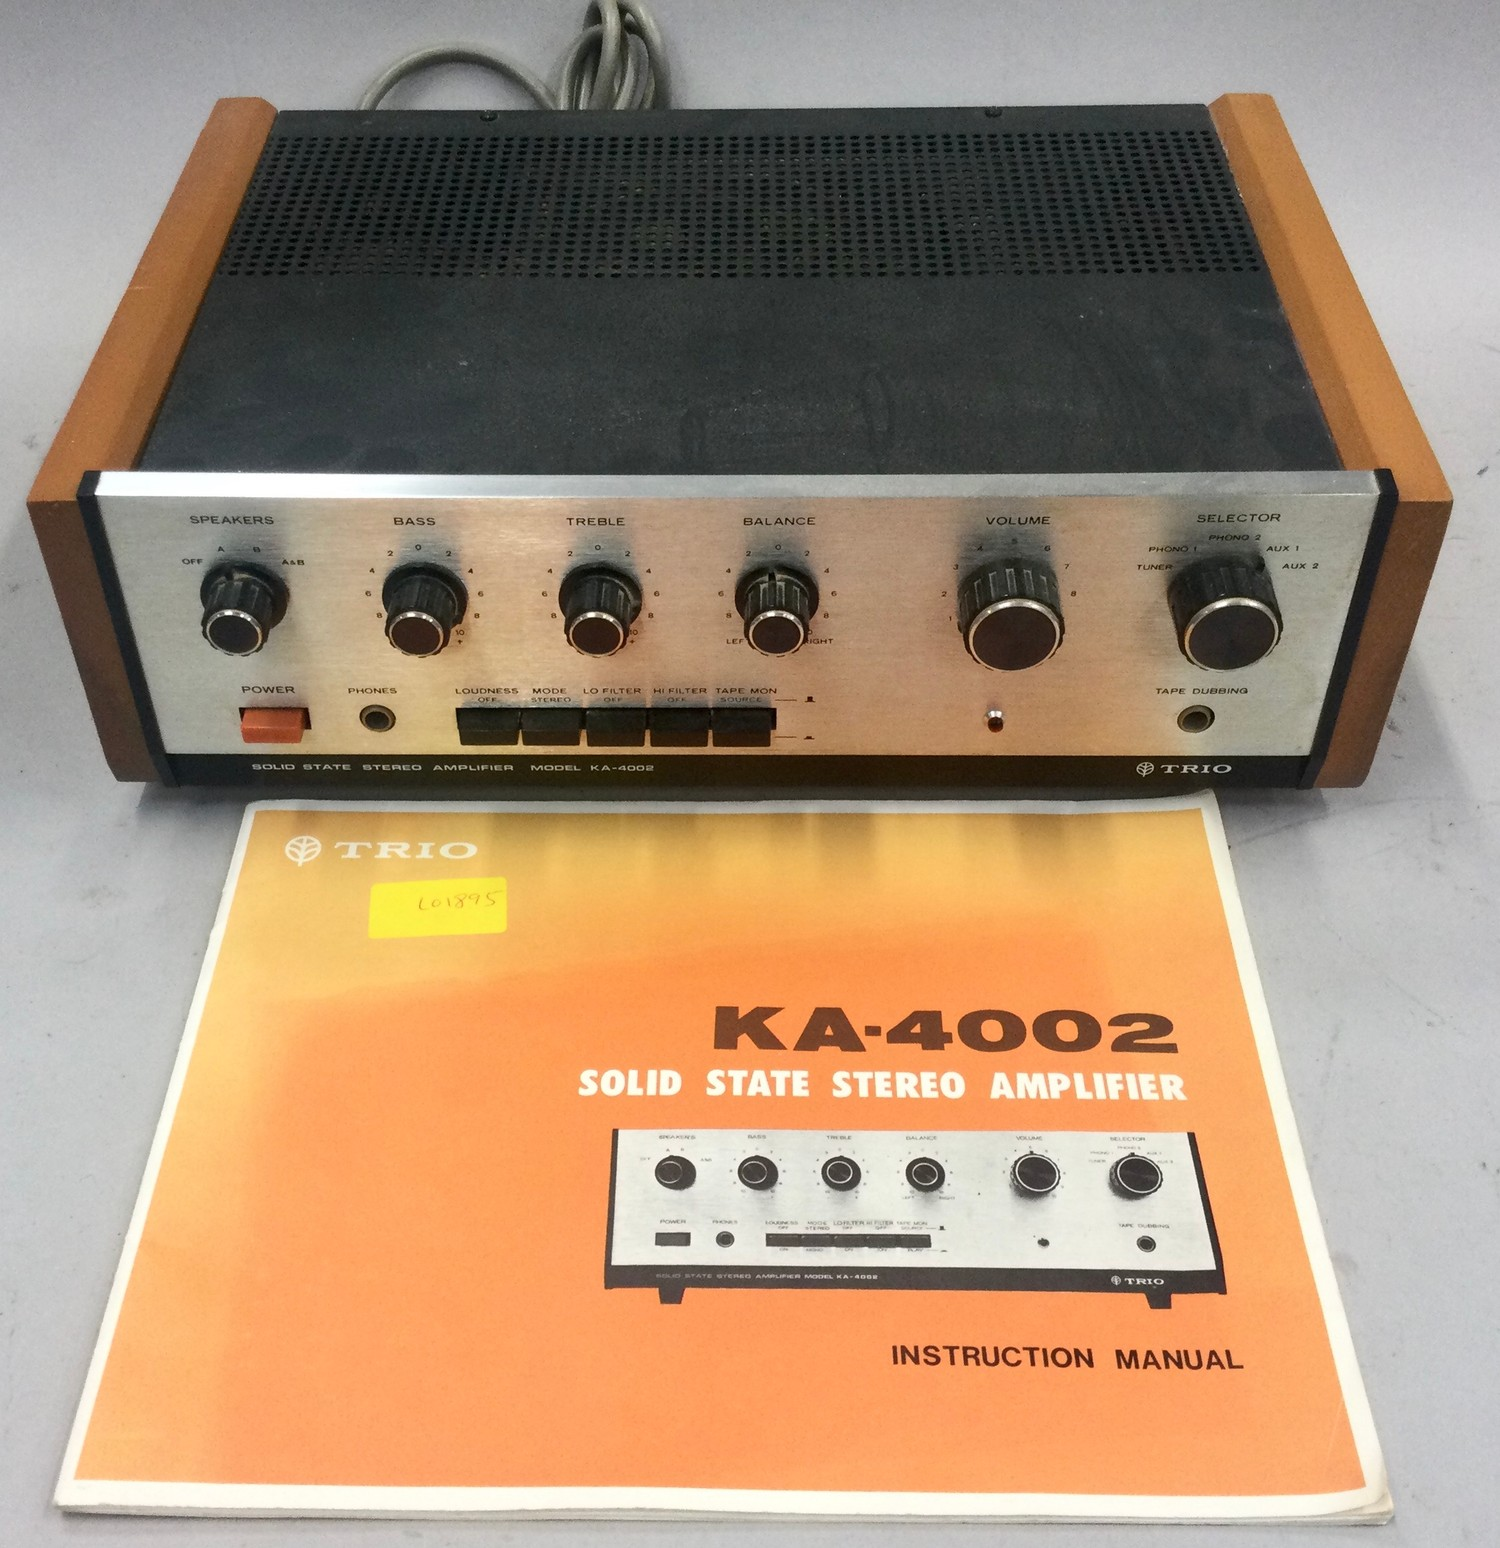 TRIO KA-4002 AMPLIFIER. Built in the early seventies this Trio was way ahead of its time with the